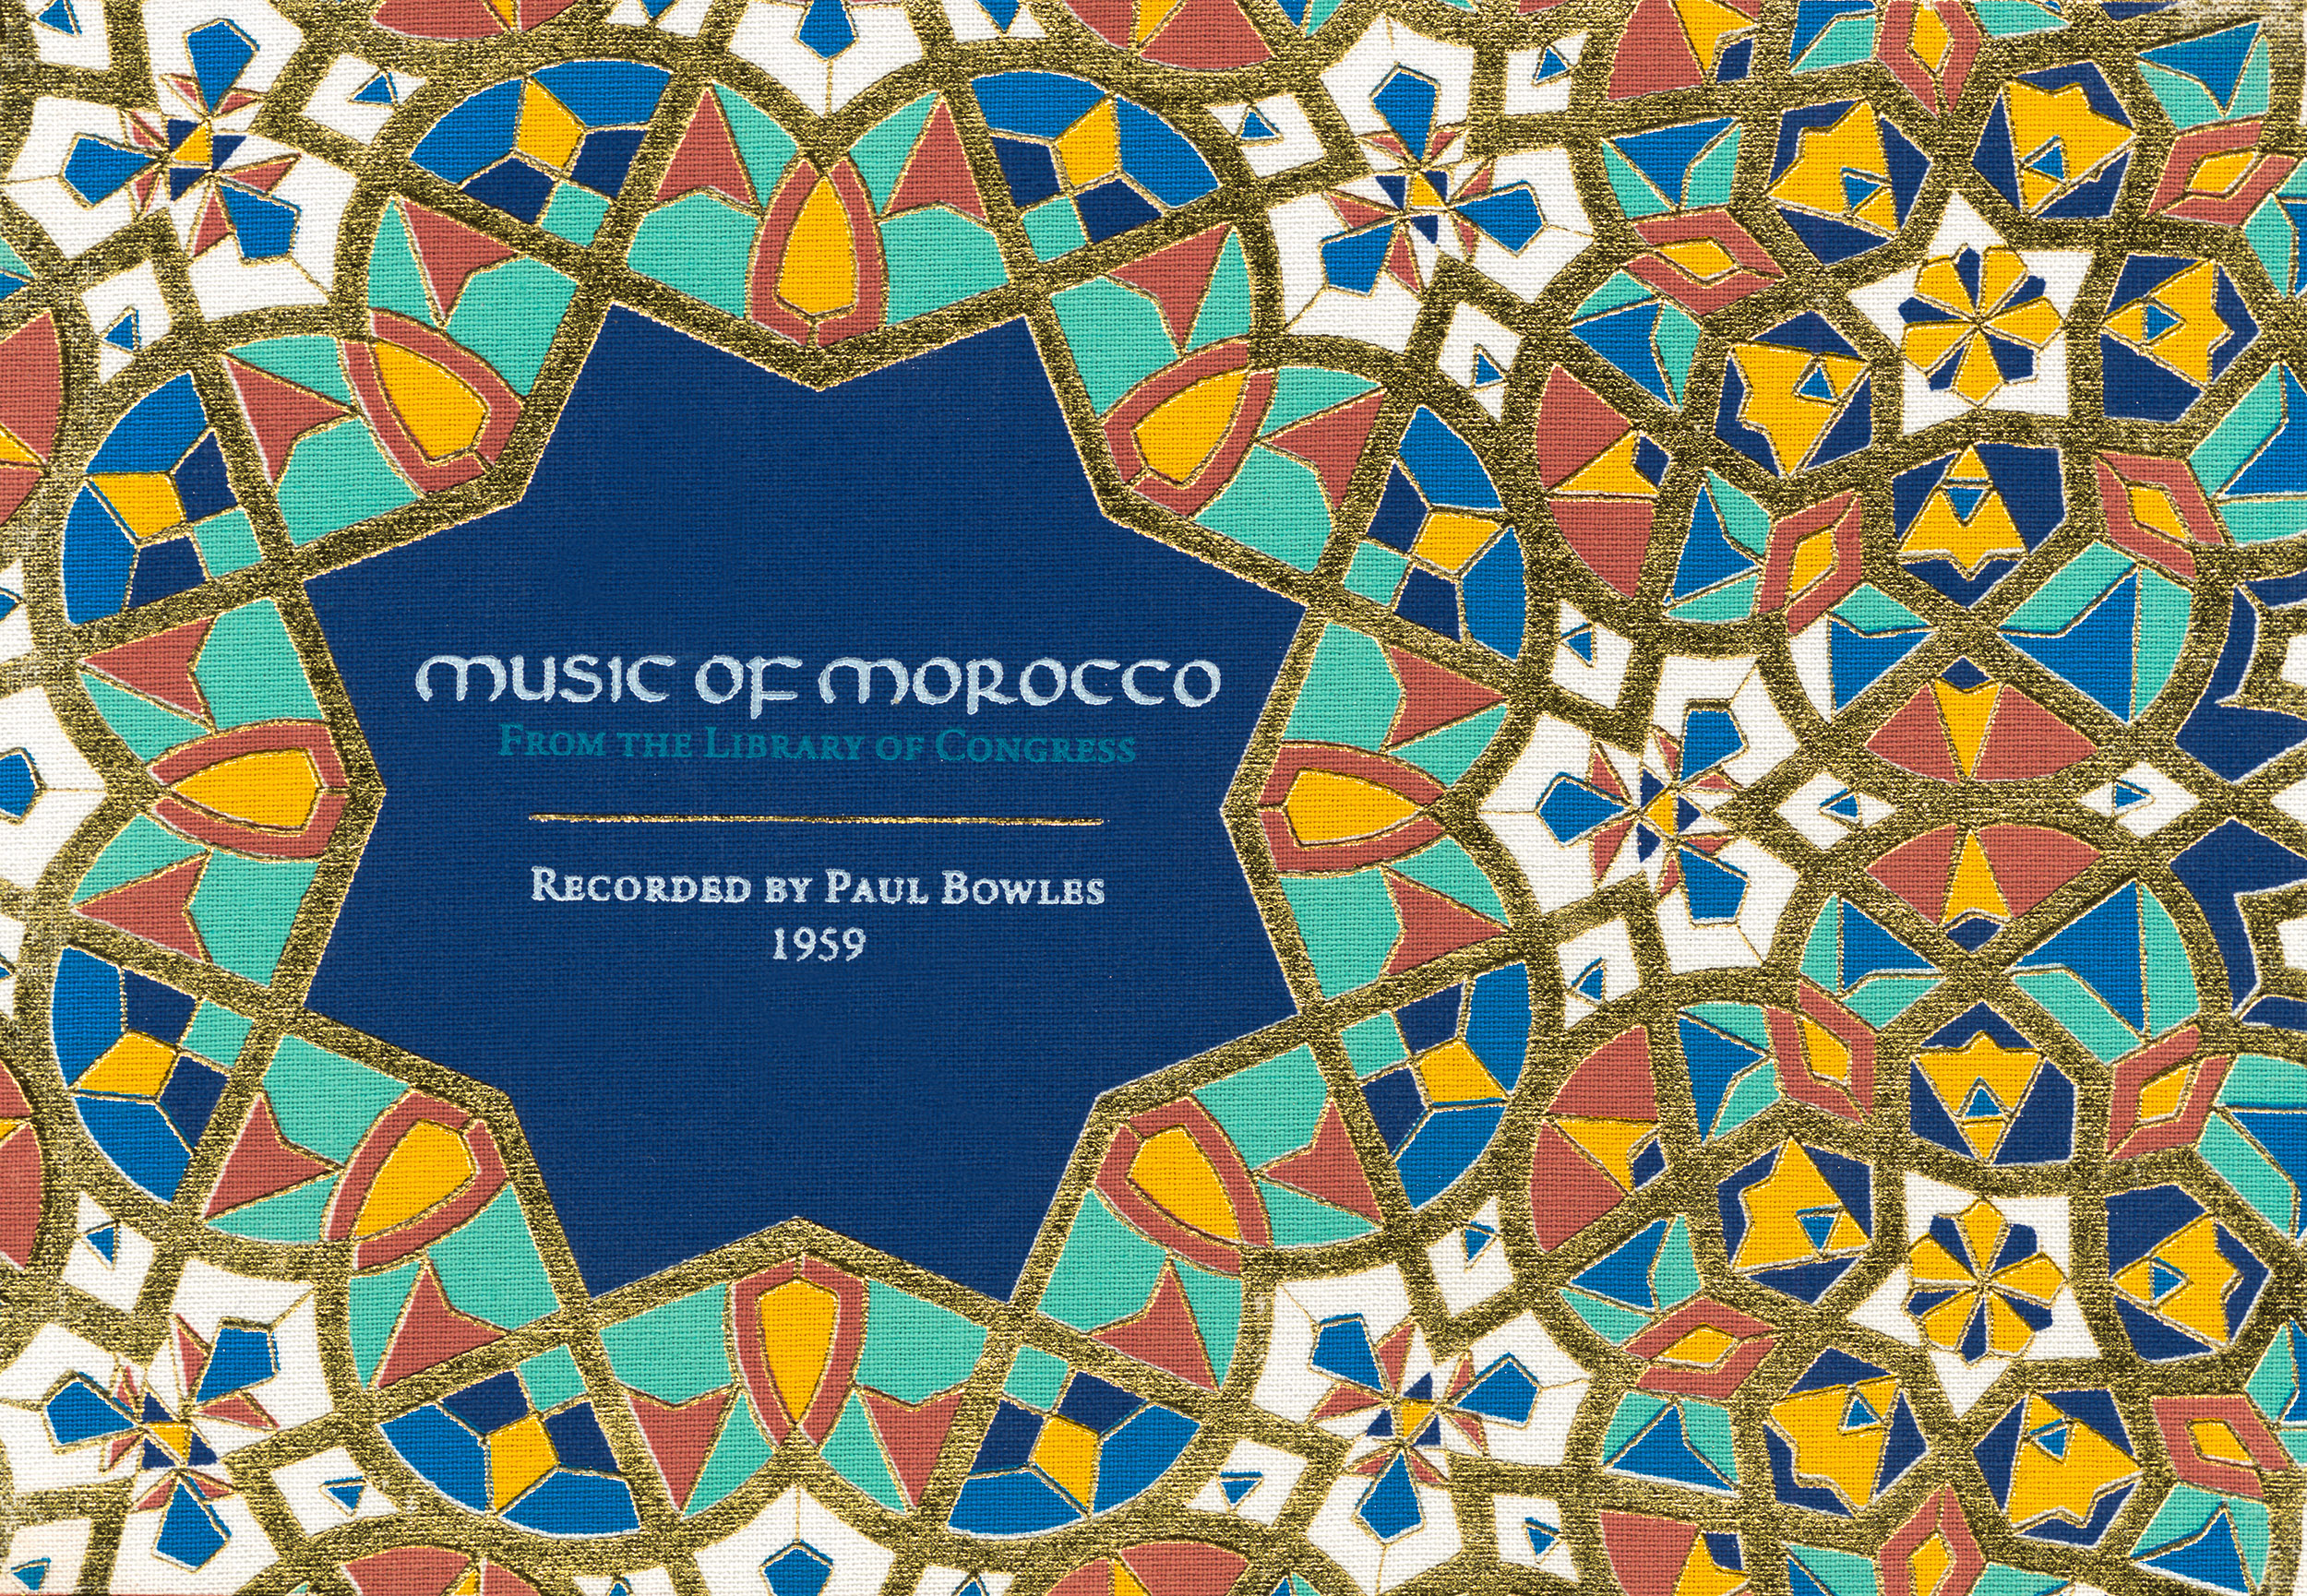 """Music of Morocco: Recorded by Paul Bowles  Release Date: April 1, 2016 Label: Dust-to-Digital  SERVICE: Restoration, Mastering SOURCE MATERIAL: 1/4"""" tape NUMBER OF DISCS: 4 GENRE: Moroccan FORMAT: CD"""